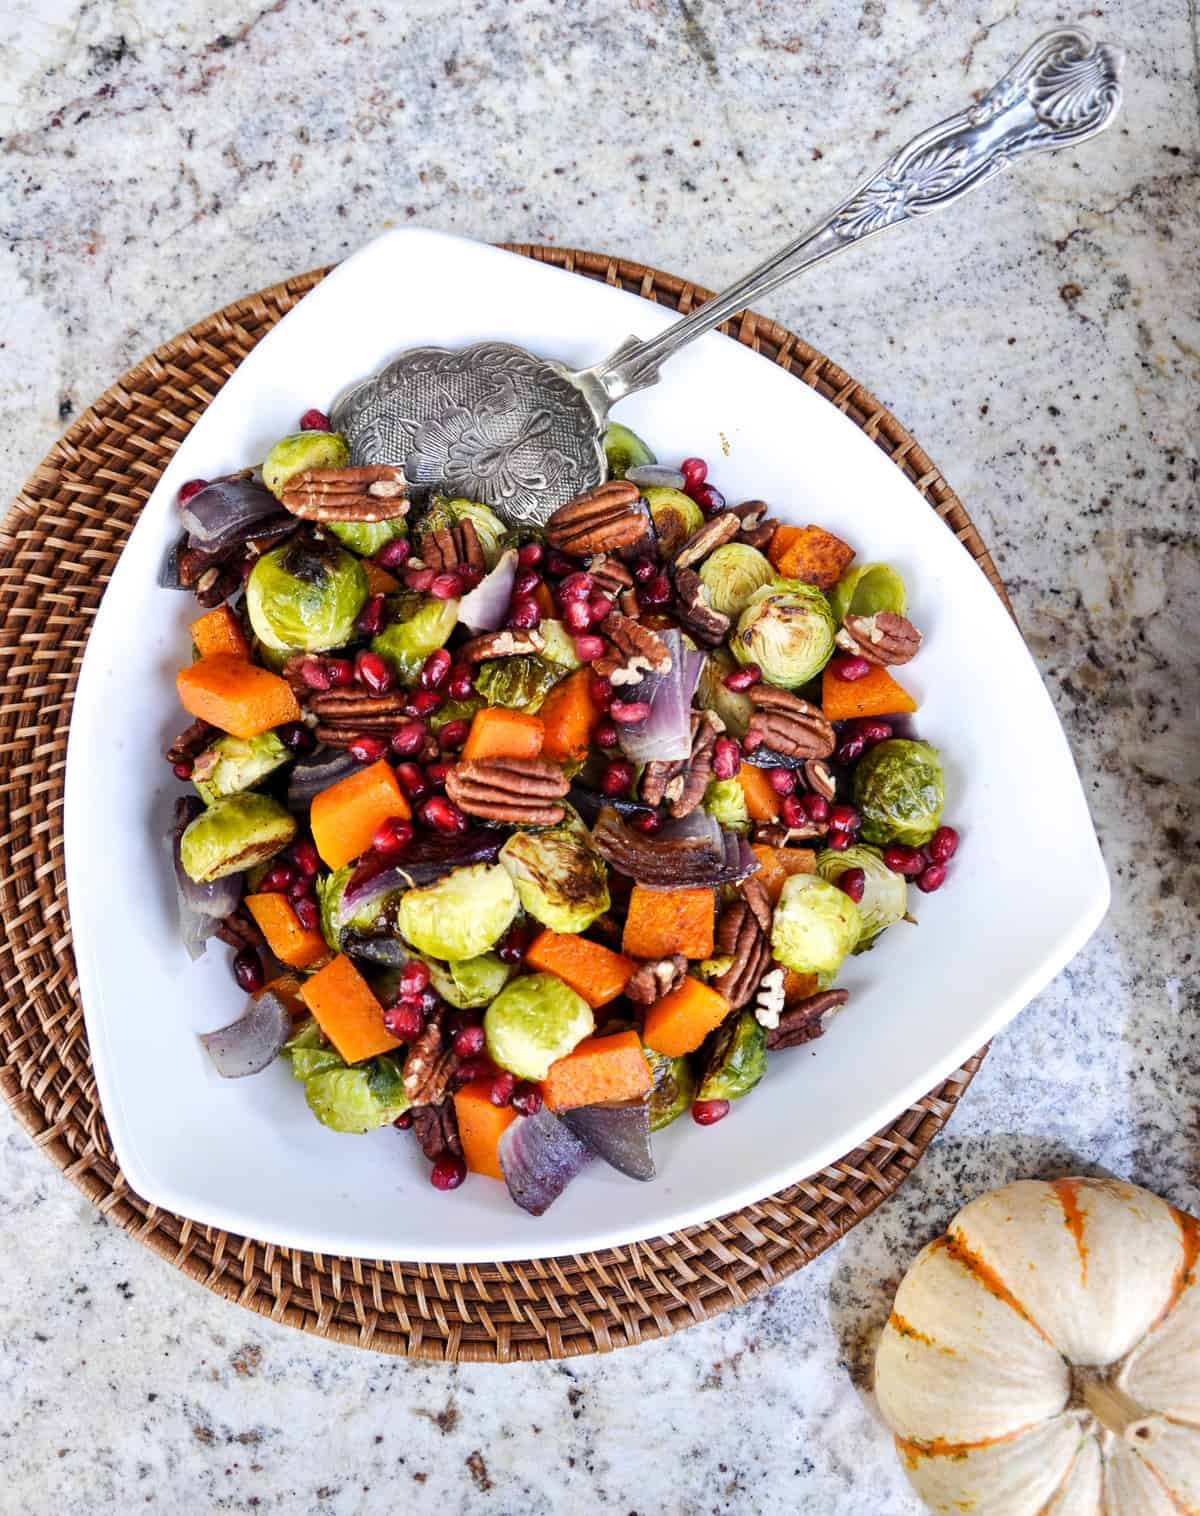 Roasted Brussels Sprouts & Butternut Squash Medley with Pecans and Pomegranate